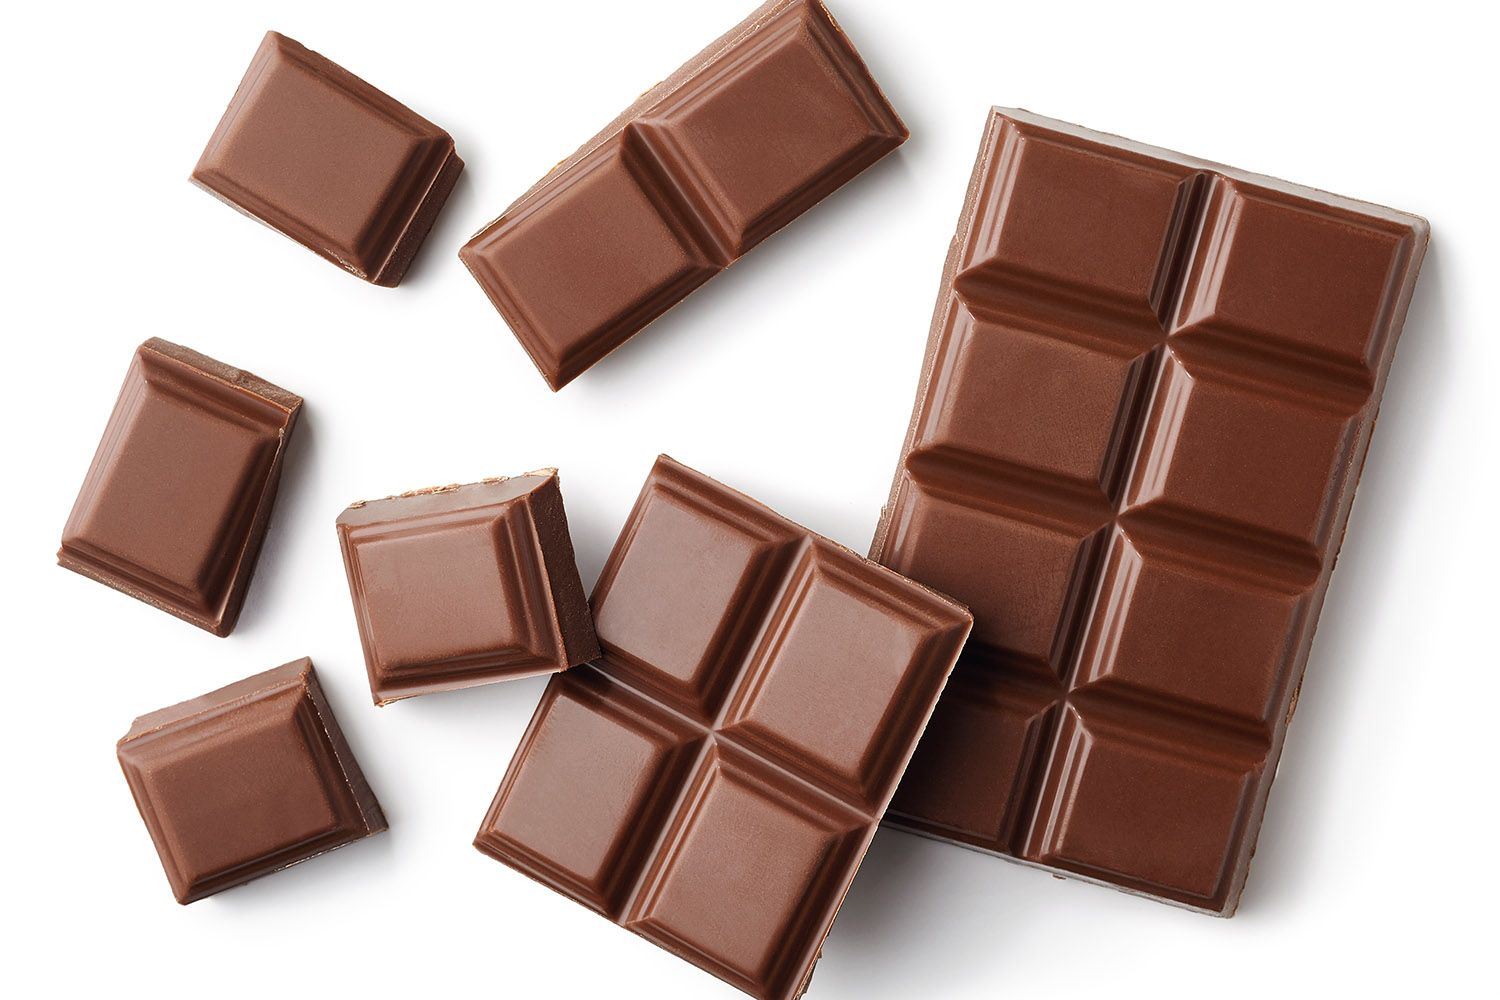 Image result for chocolate bar